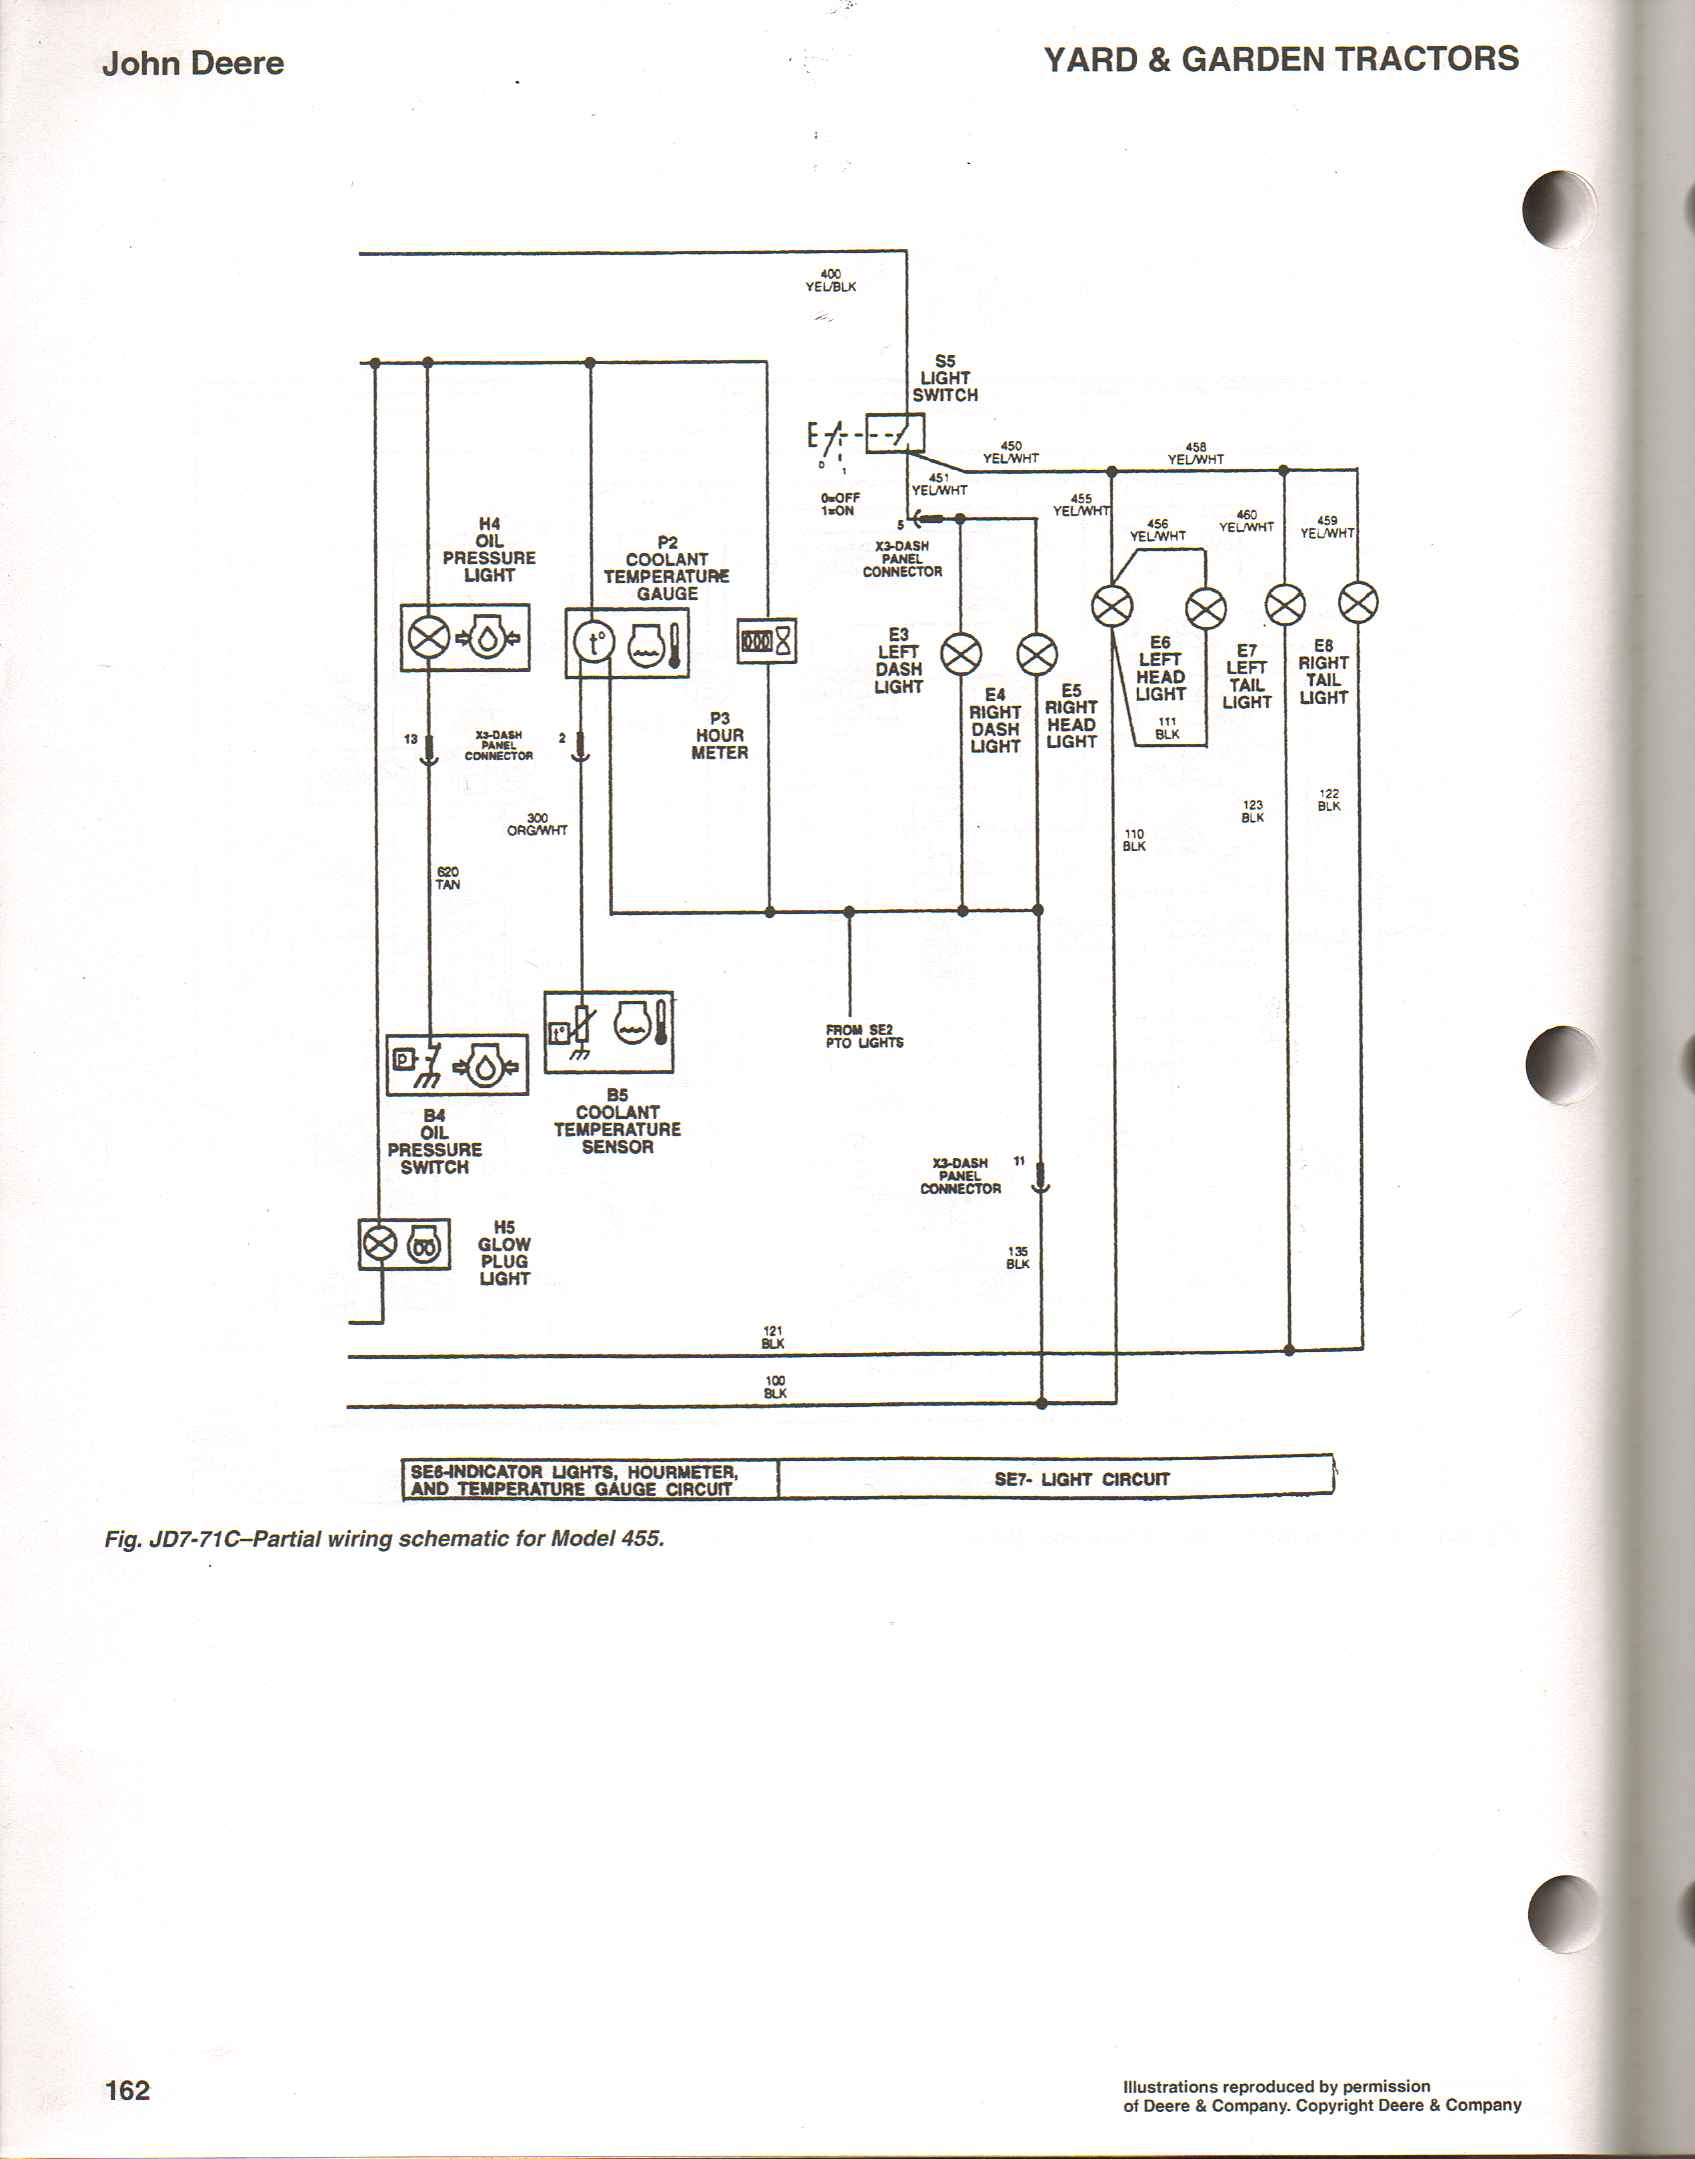 John Deere X740 Wiring Schematics House Diagram Symbols 1971 112 Trusted X748 Block And Schematic Diagrams U2022 Rh Lazysupply Co